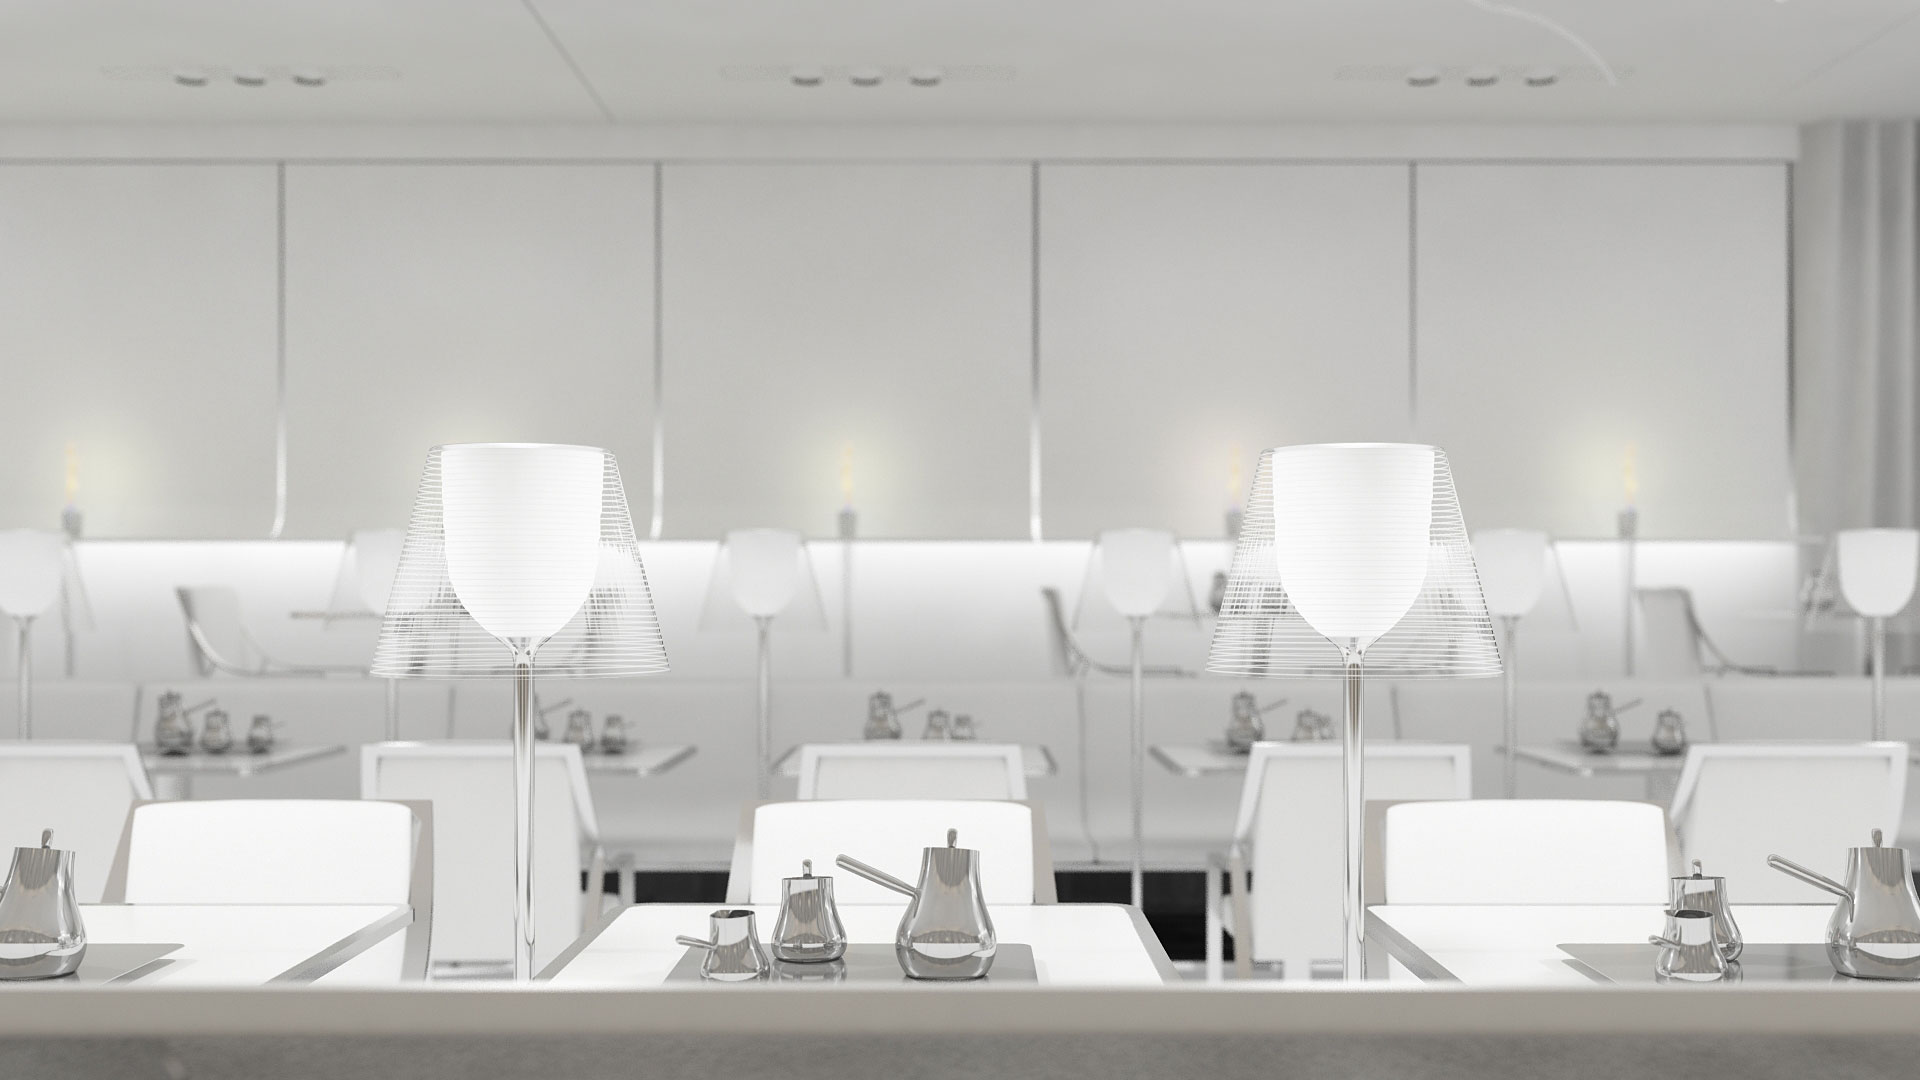 banquette design, restaurant minimaliste, lampadaire ktribe, flos, starck, evermotion 3d model, vray, depth of field, profondeur de champ